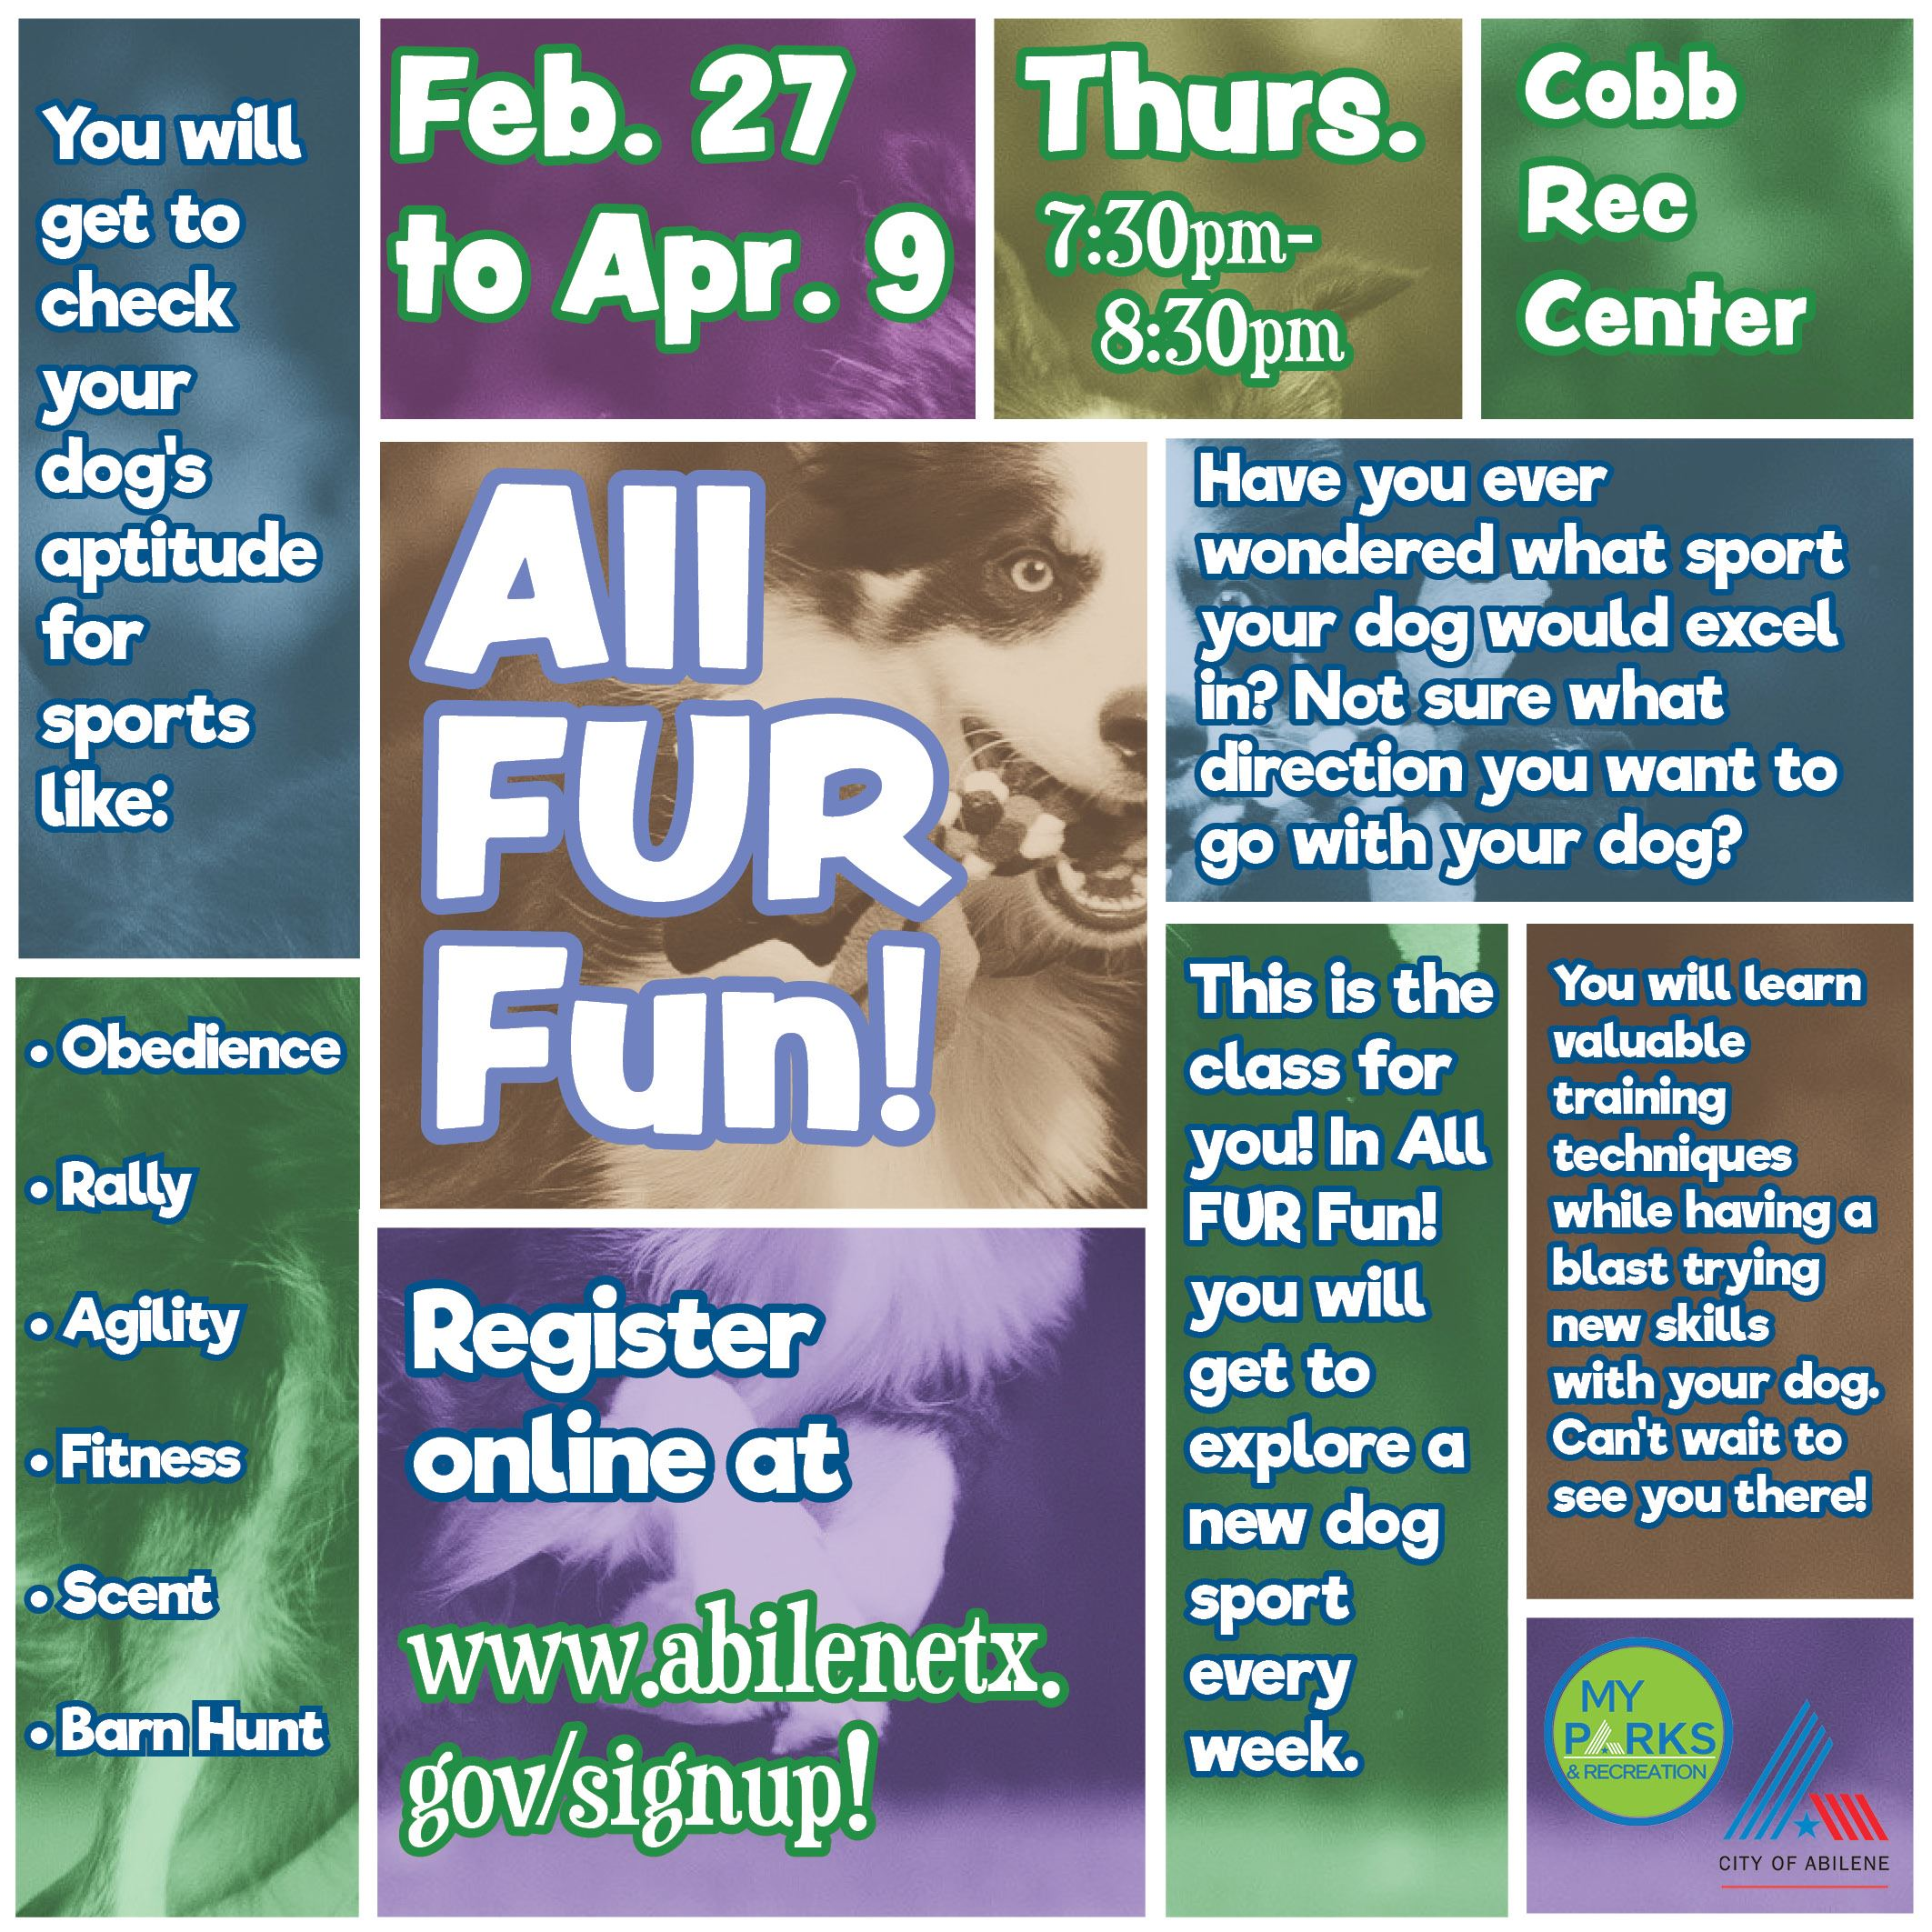 All FUR Fun Dog Class Abilene Texas